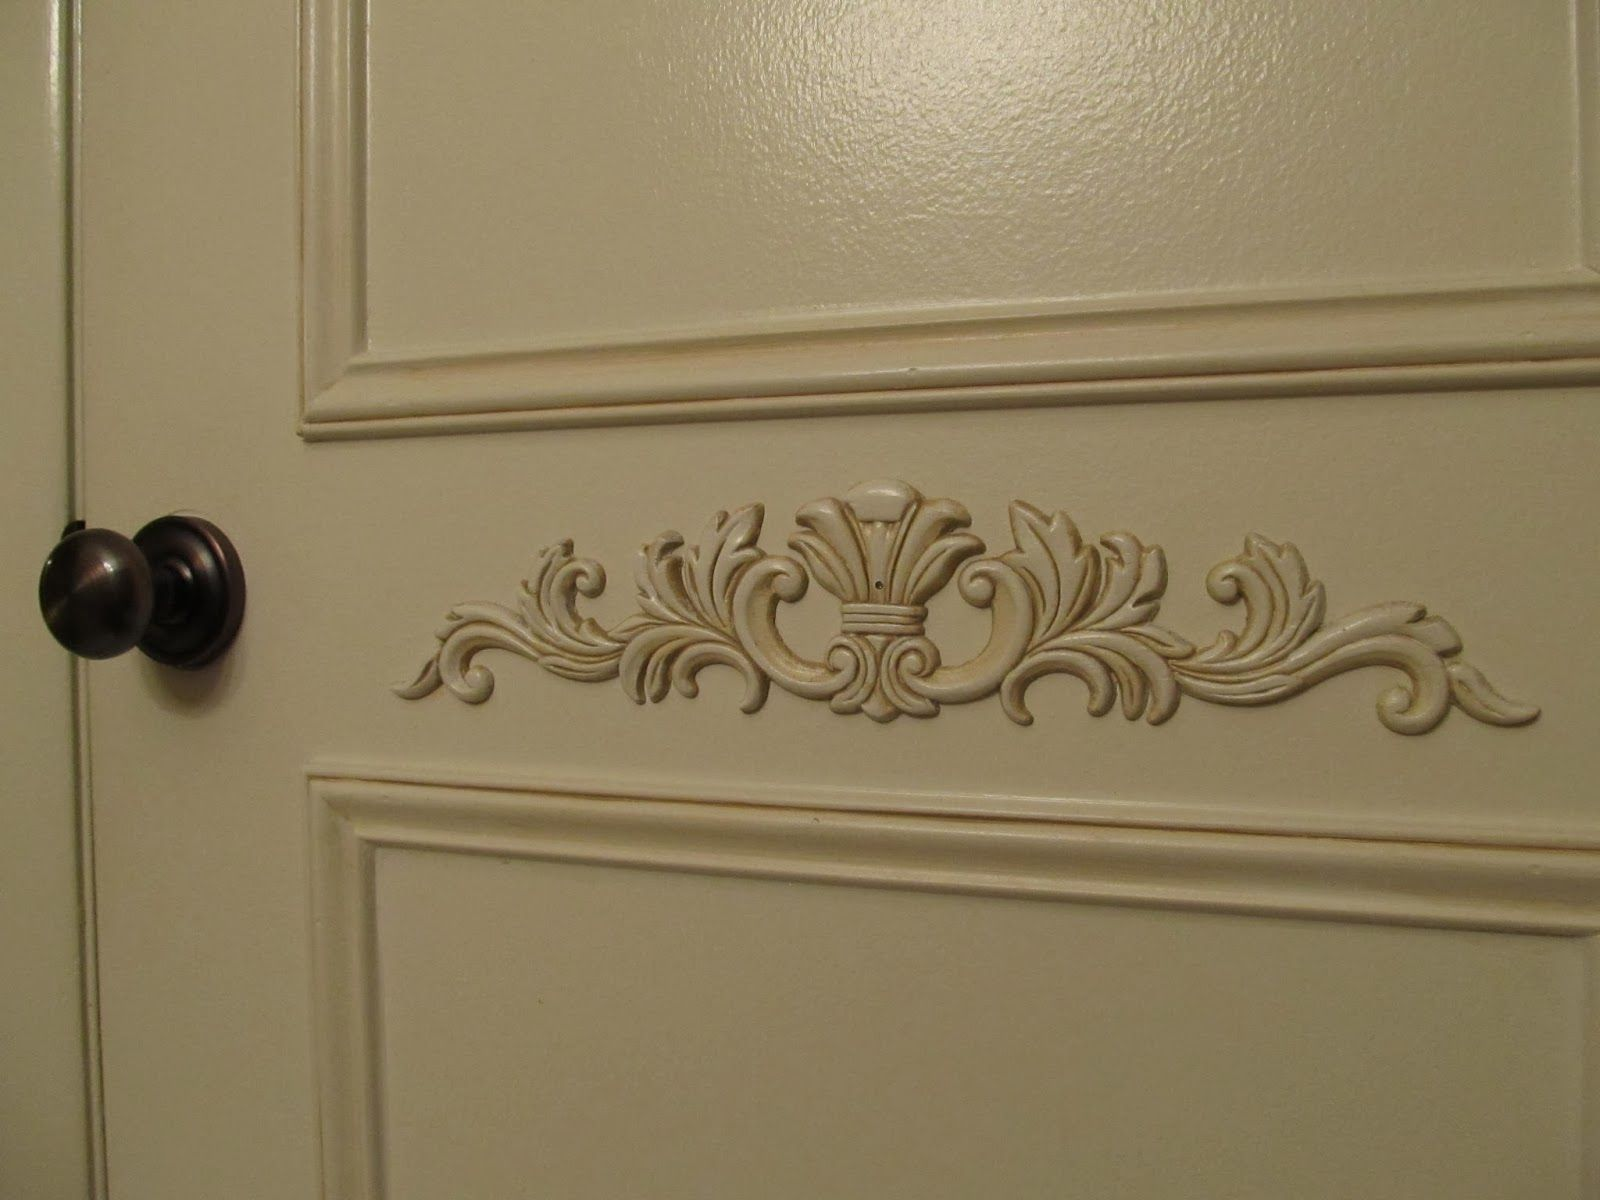 Adding Molding To A Door Gangdeur En Slaapkamerdeure Furniture Appliques Moldings And Trim Pantry Door